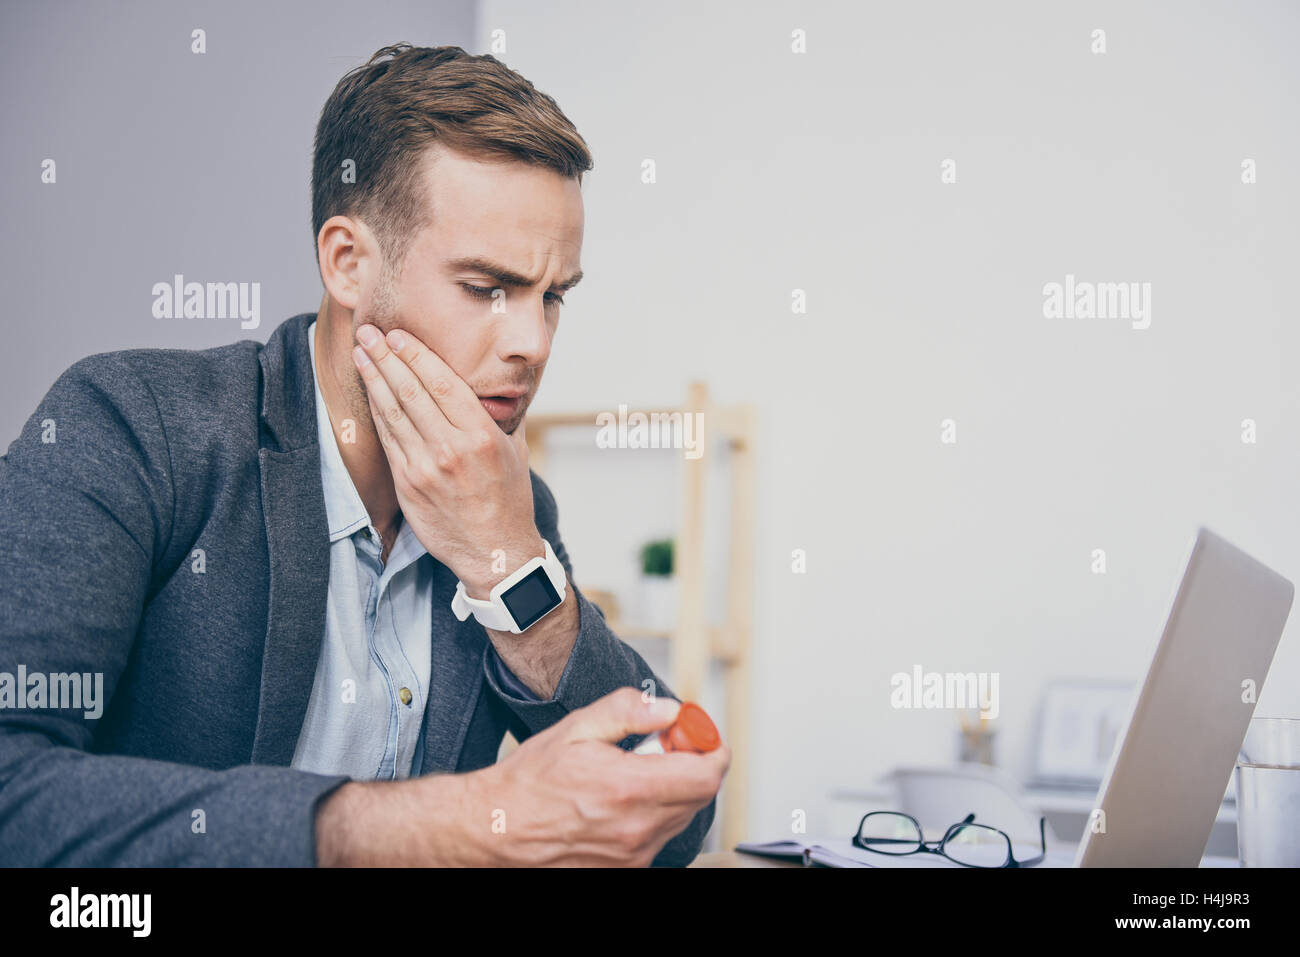 Unhappy young man holding medicines and sitting by the table. - Stock Image